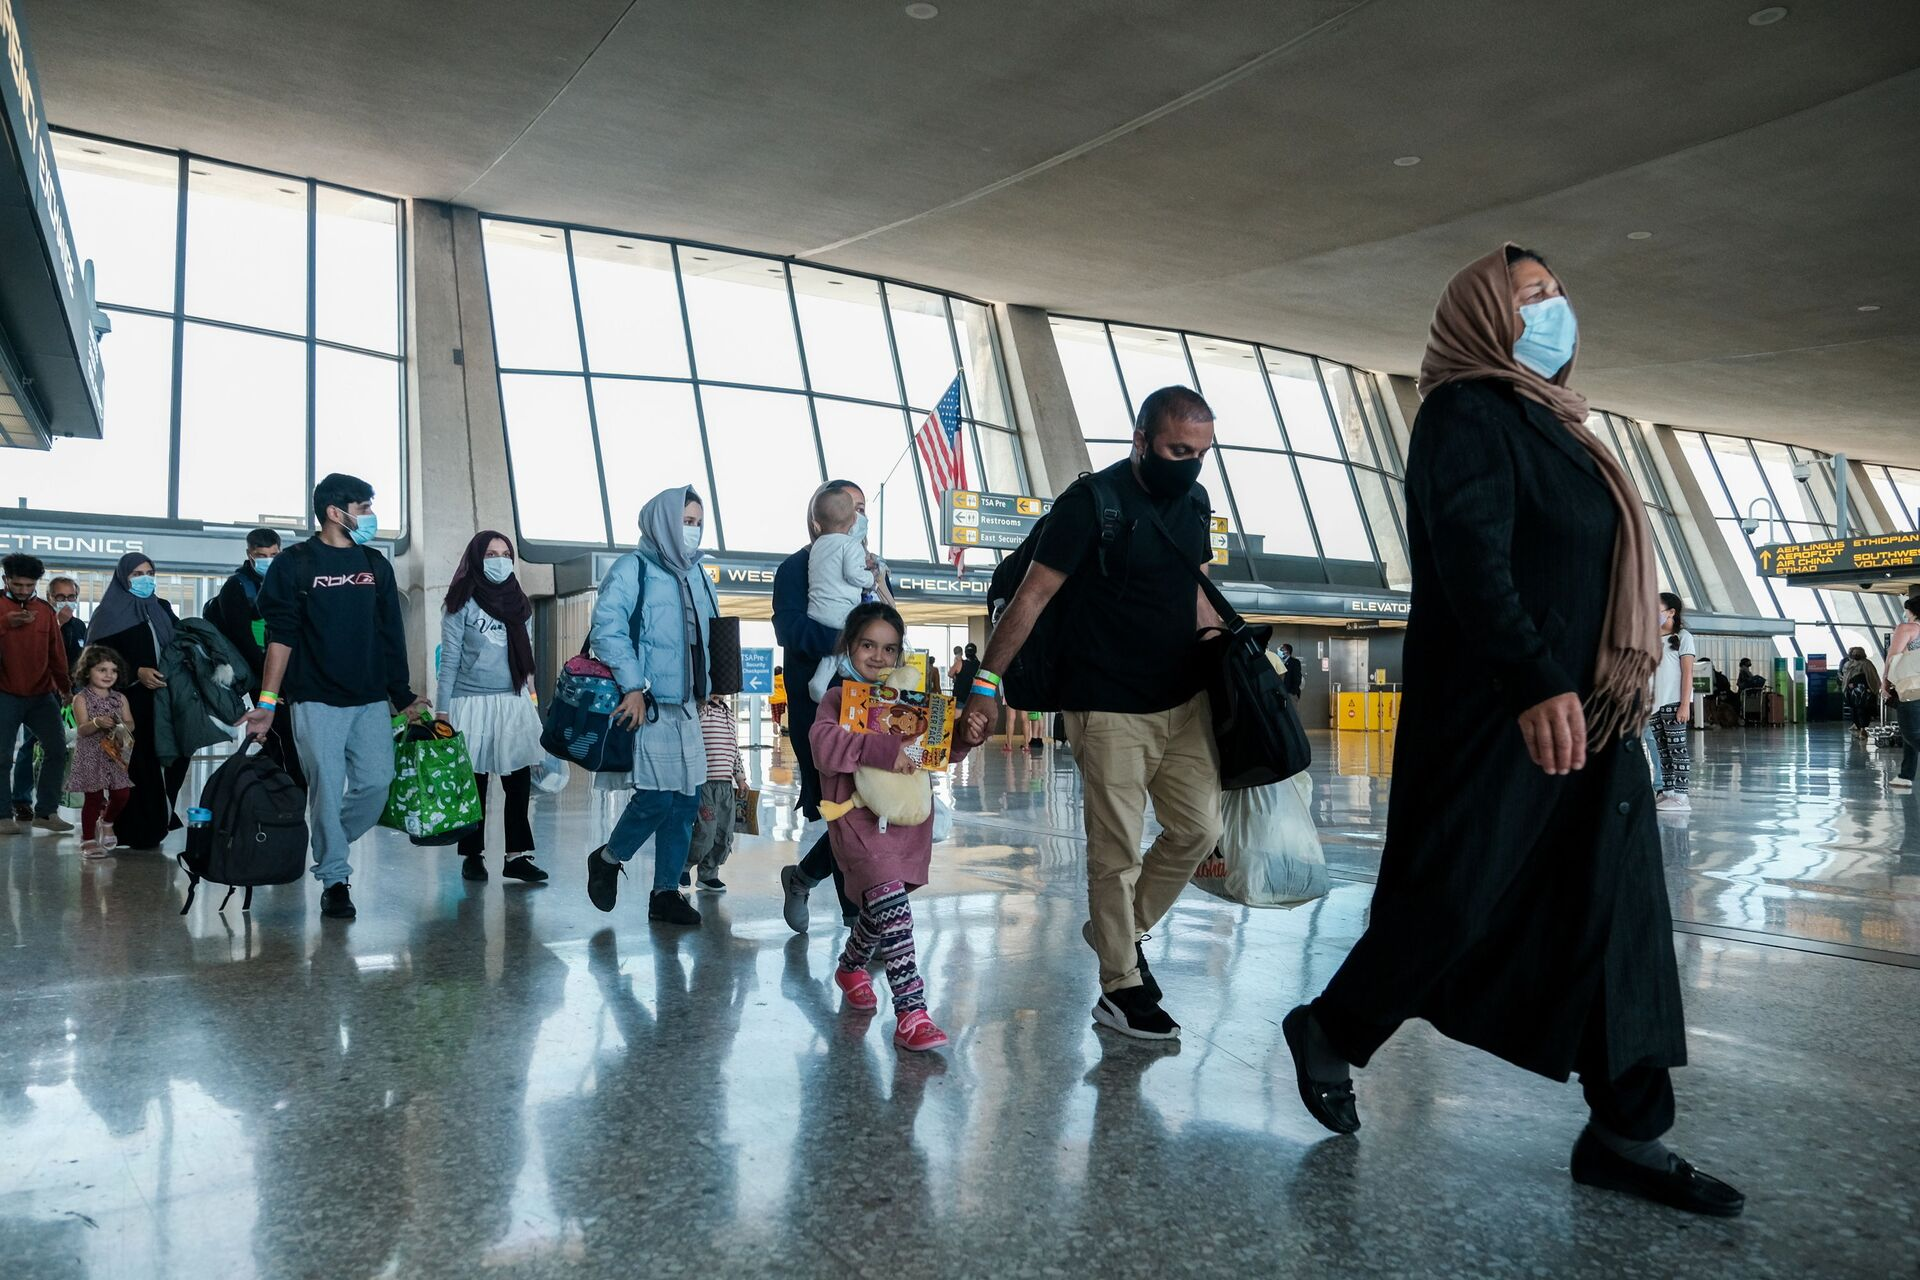 Afghan refugees walk to a bus taking them to a processing center upon arrival at Dulles International Airport in Dulles, Virginia, U.S., August 28, 2021 - Sputnik International, 1920, 07.09.2021